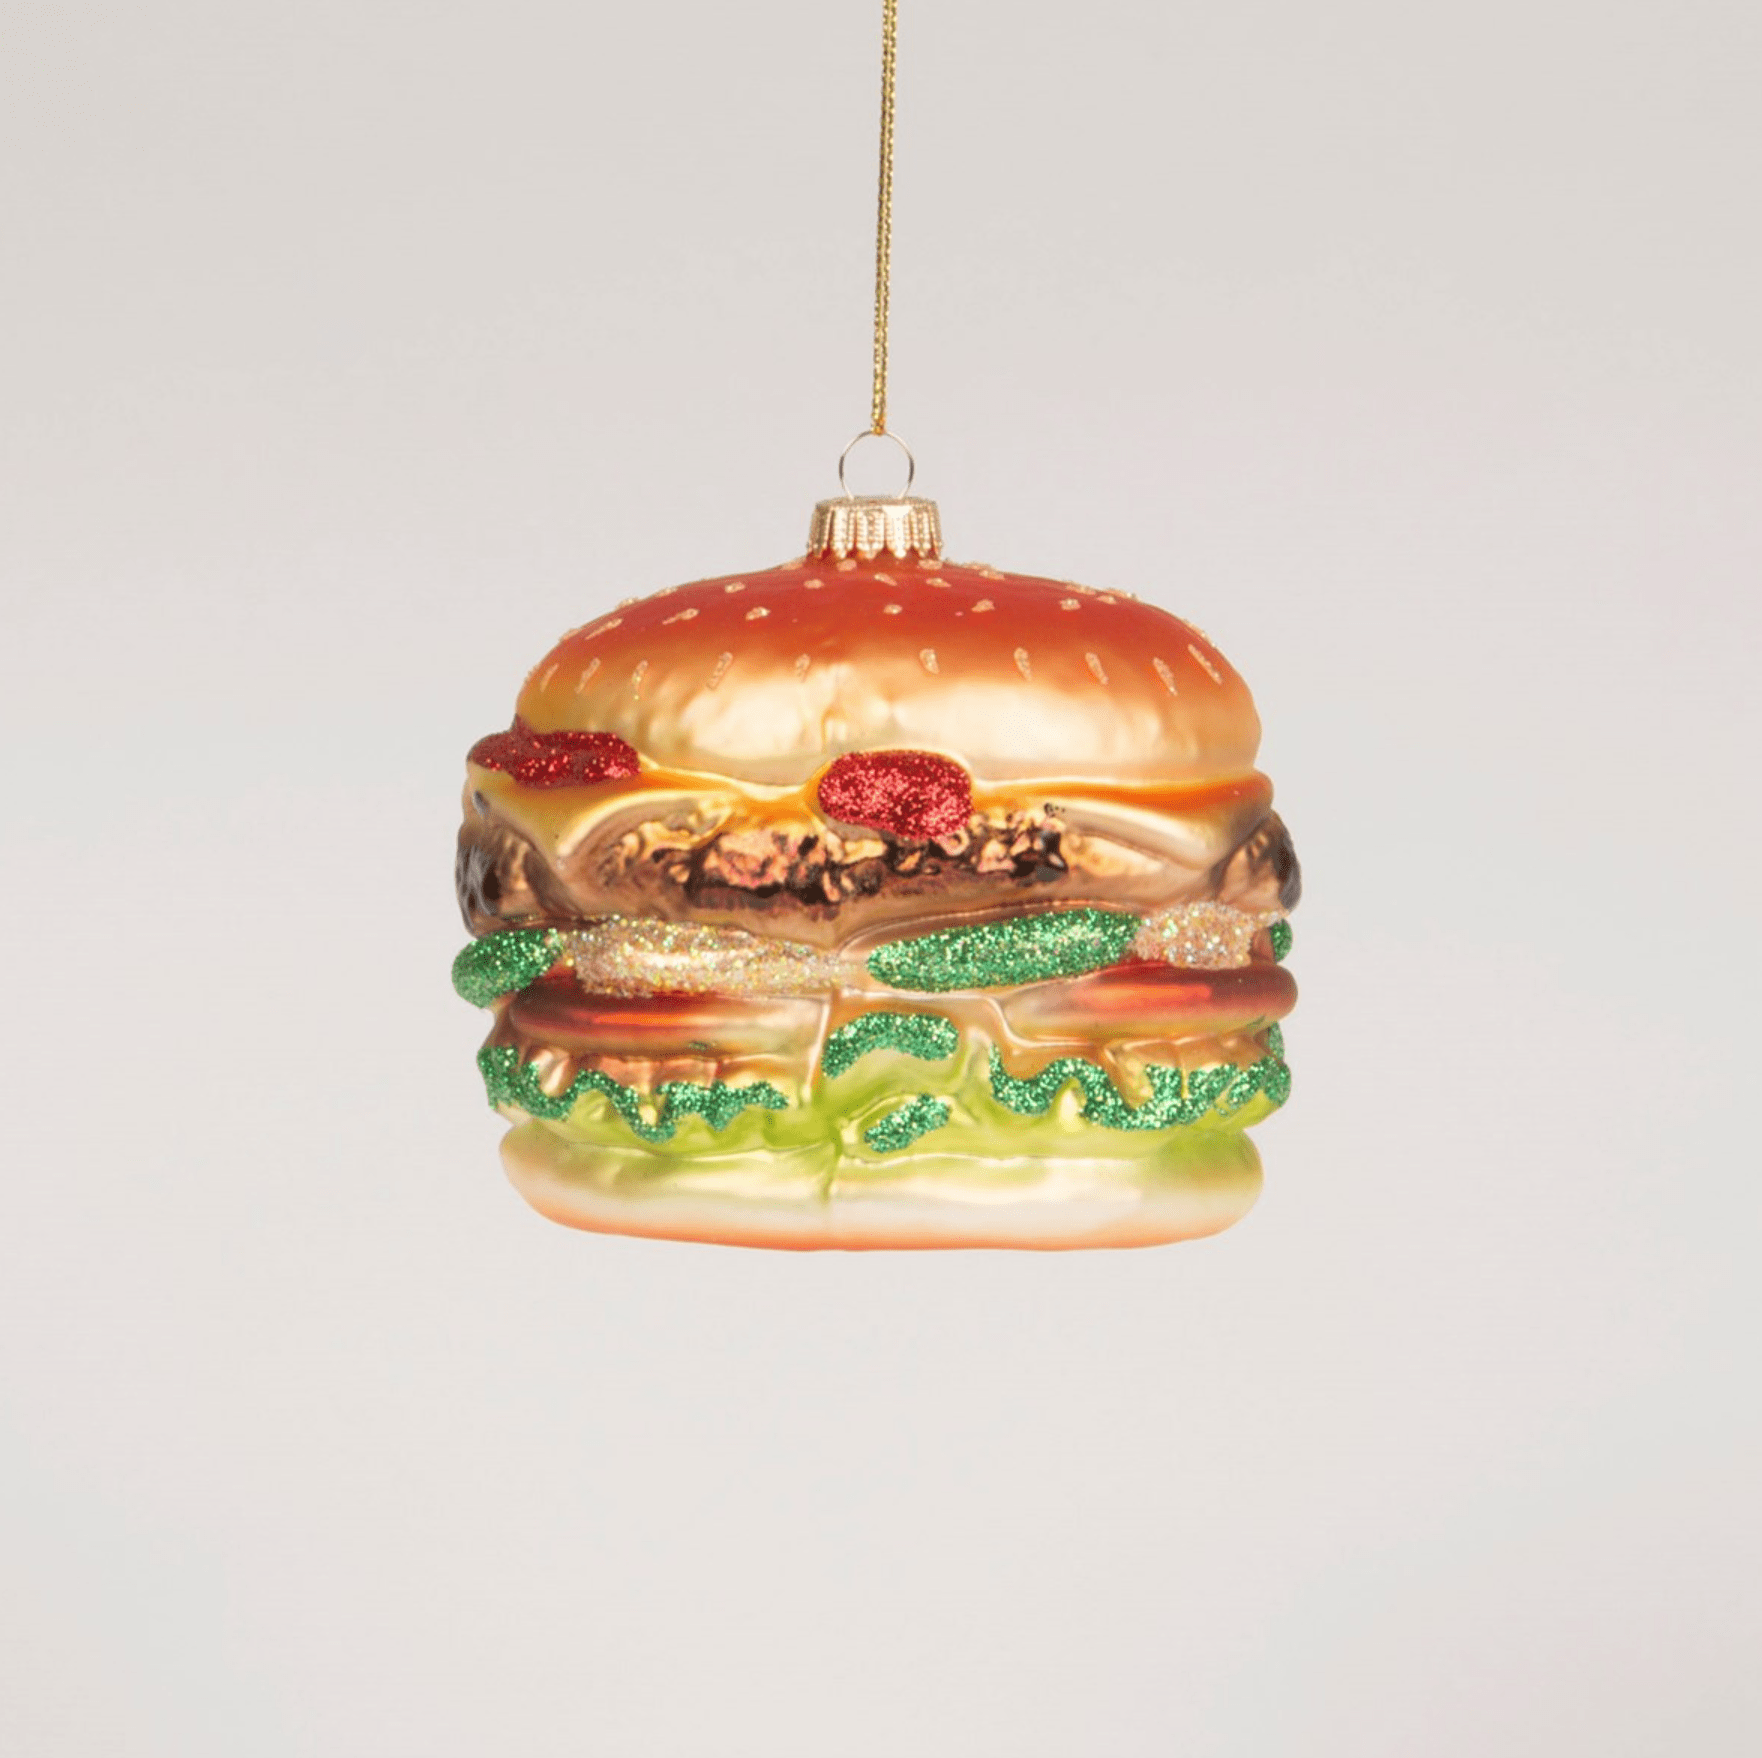 Fat Burger Shaped Bauble By Sass & Belle